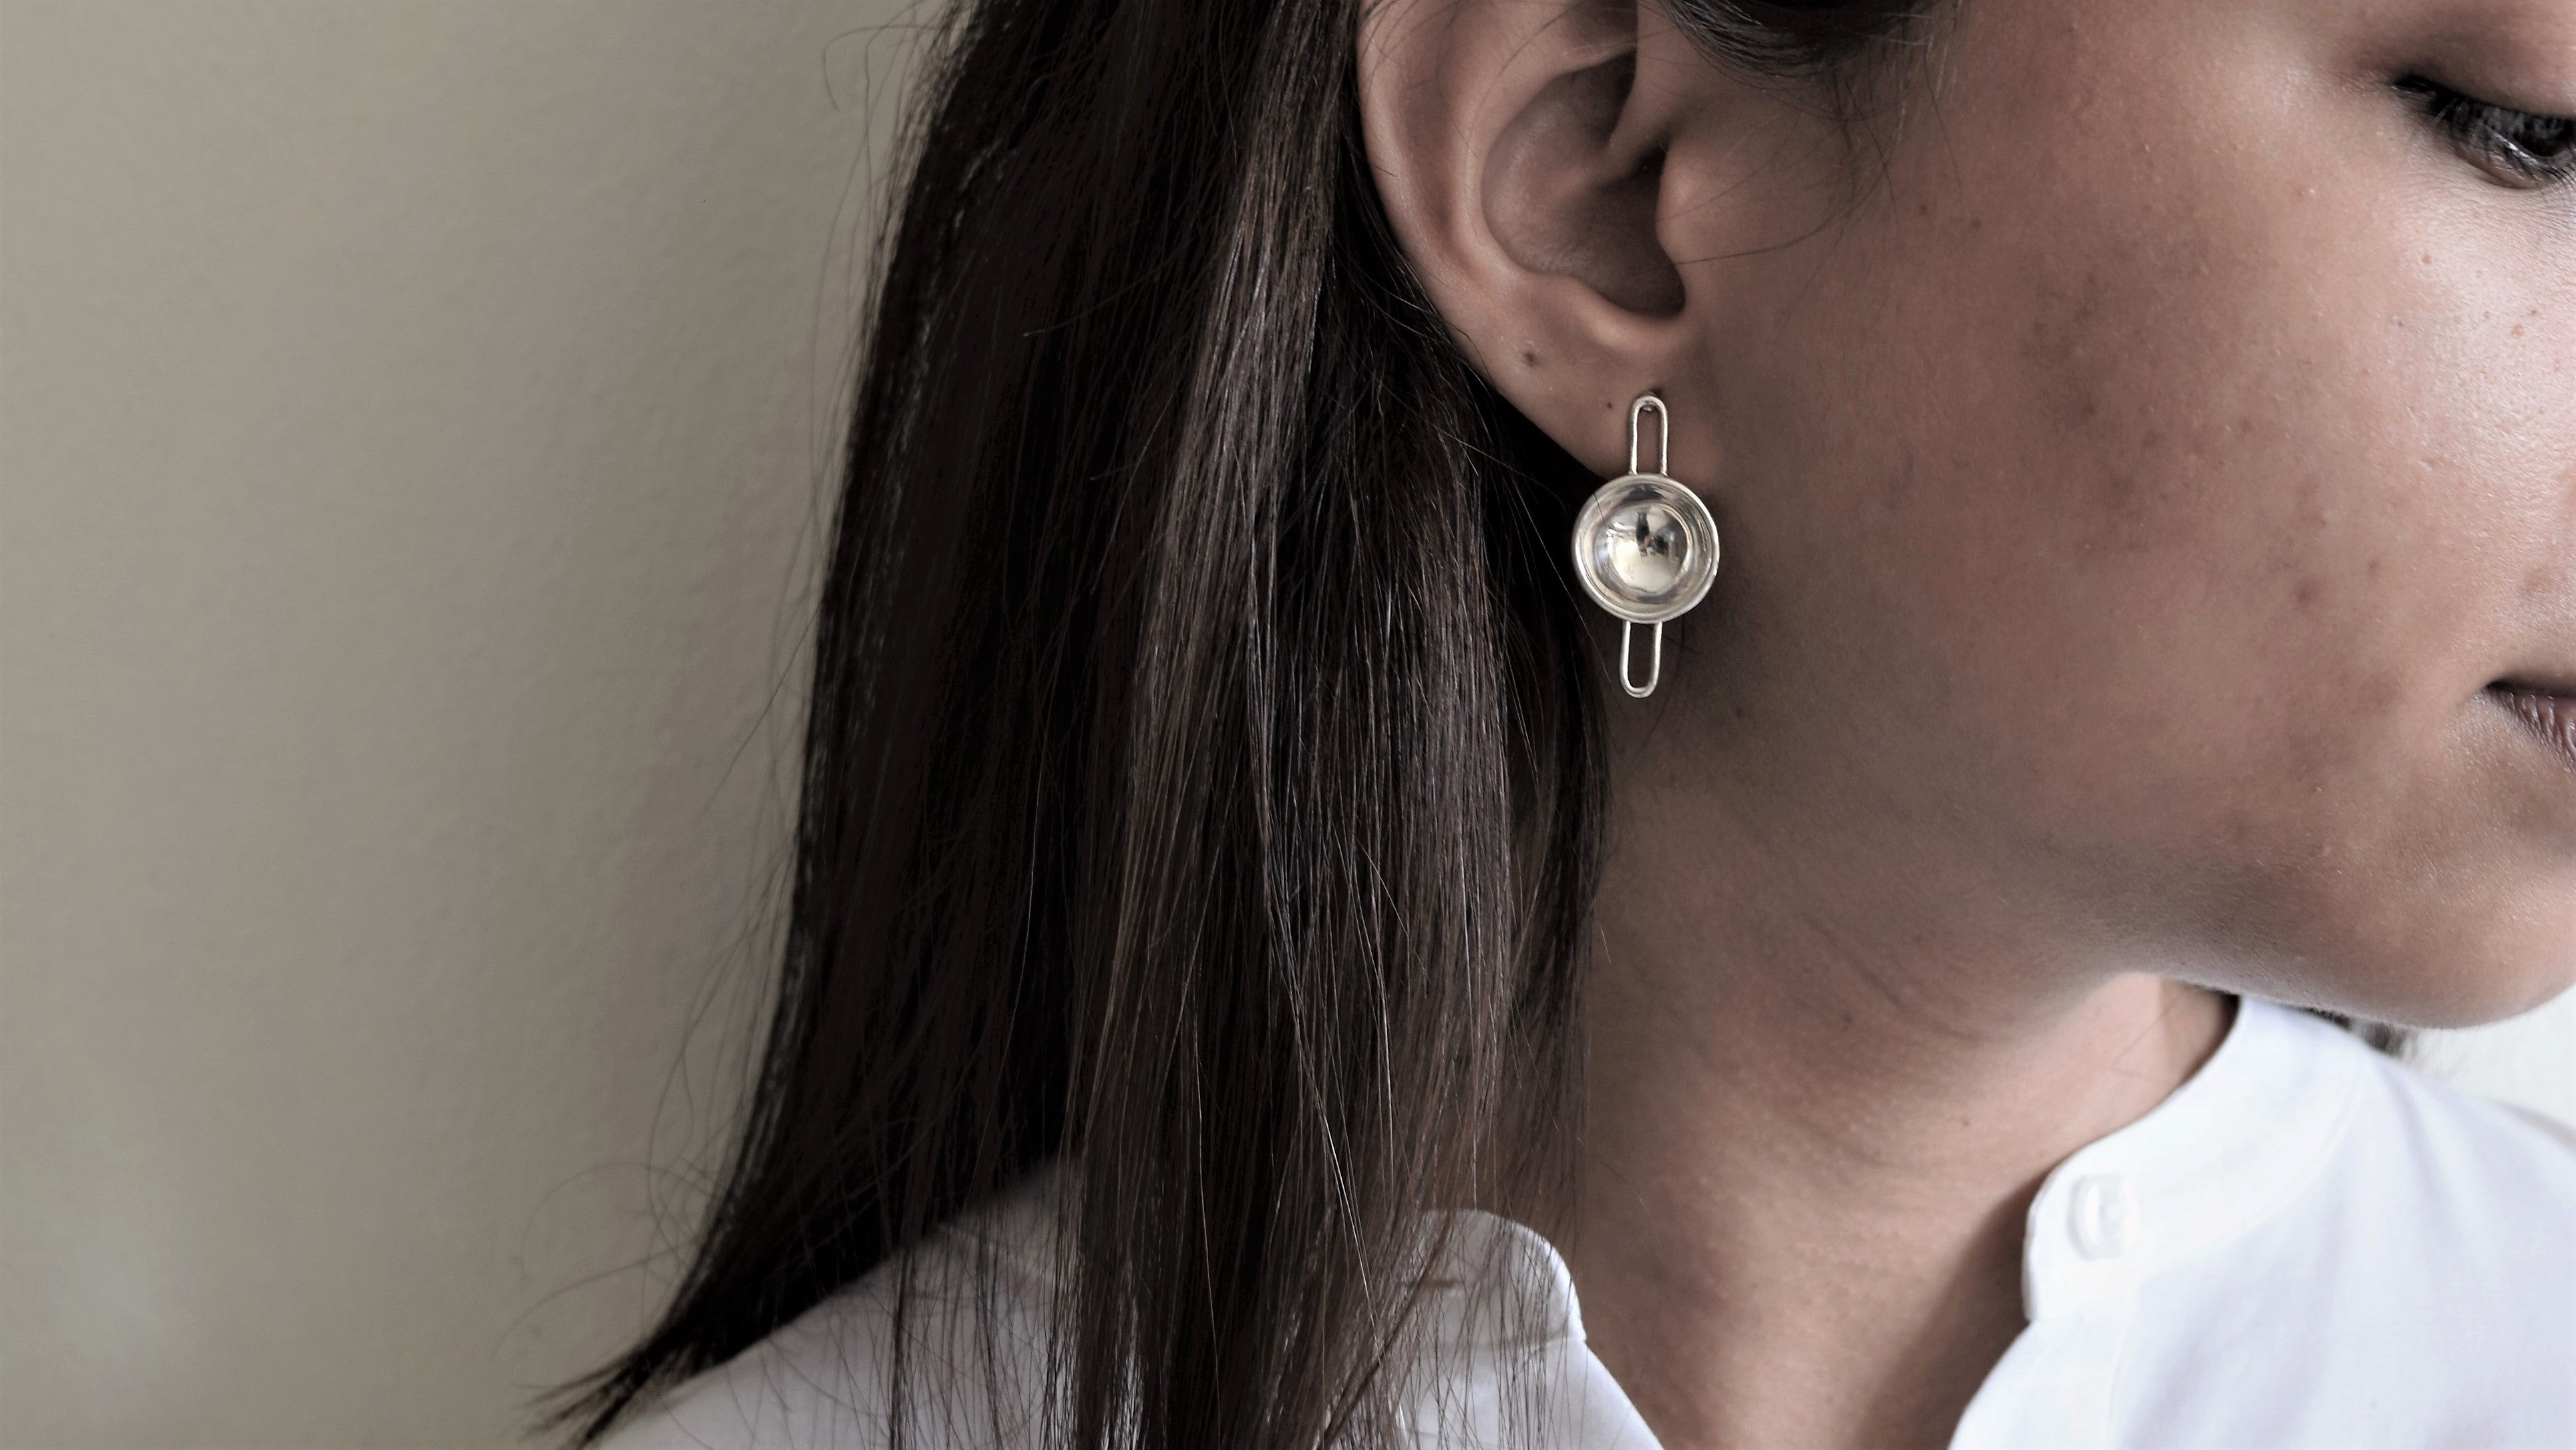 'Oggaraney' Stud Earrings